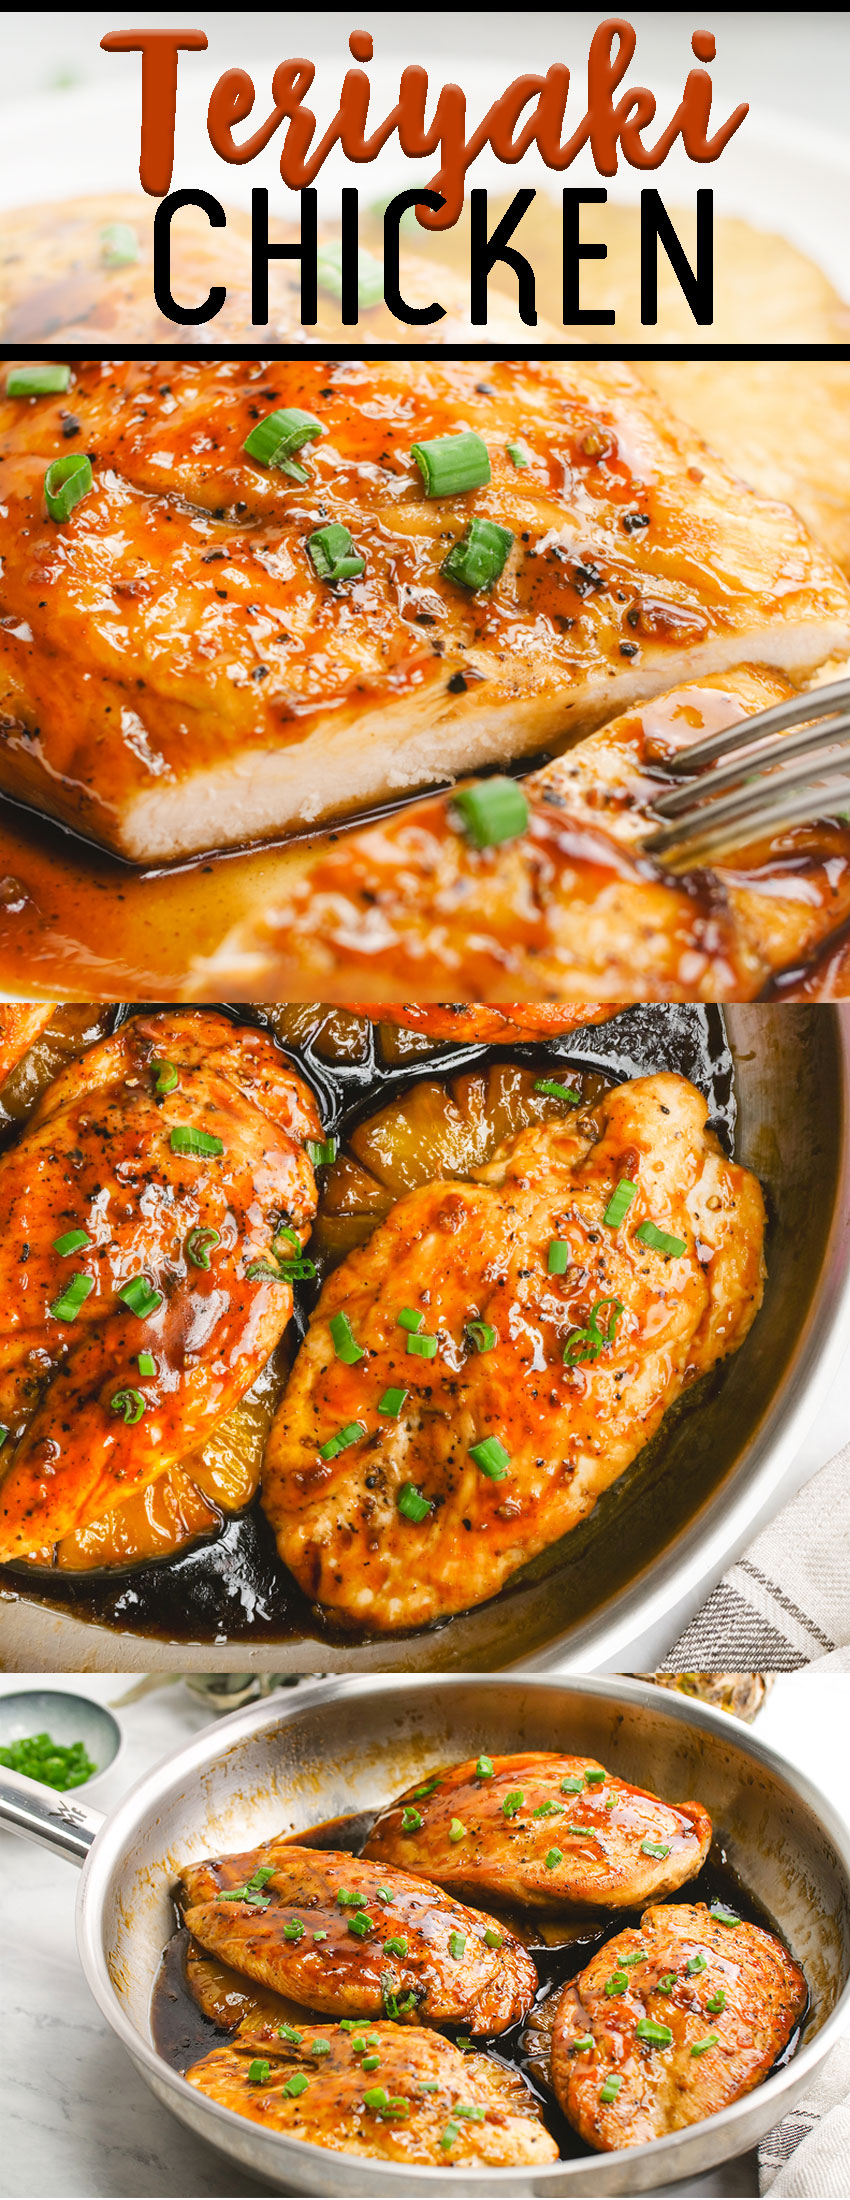 Teriyaki chicken, a skillet chicken that is topped with a fantastic homemade teriyaki sauce.